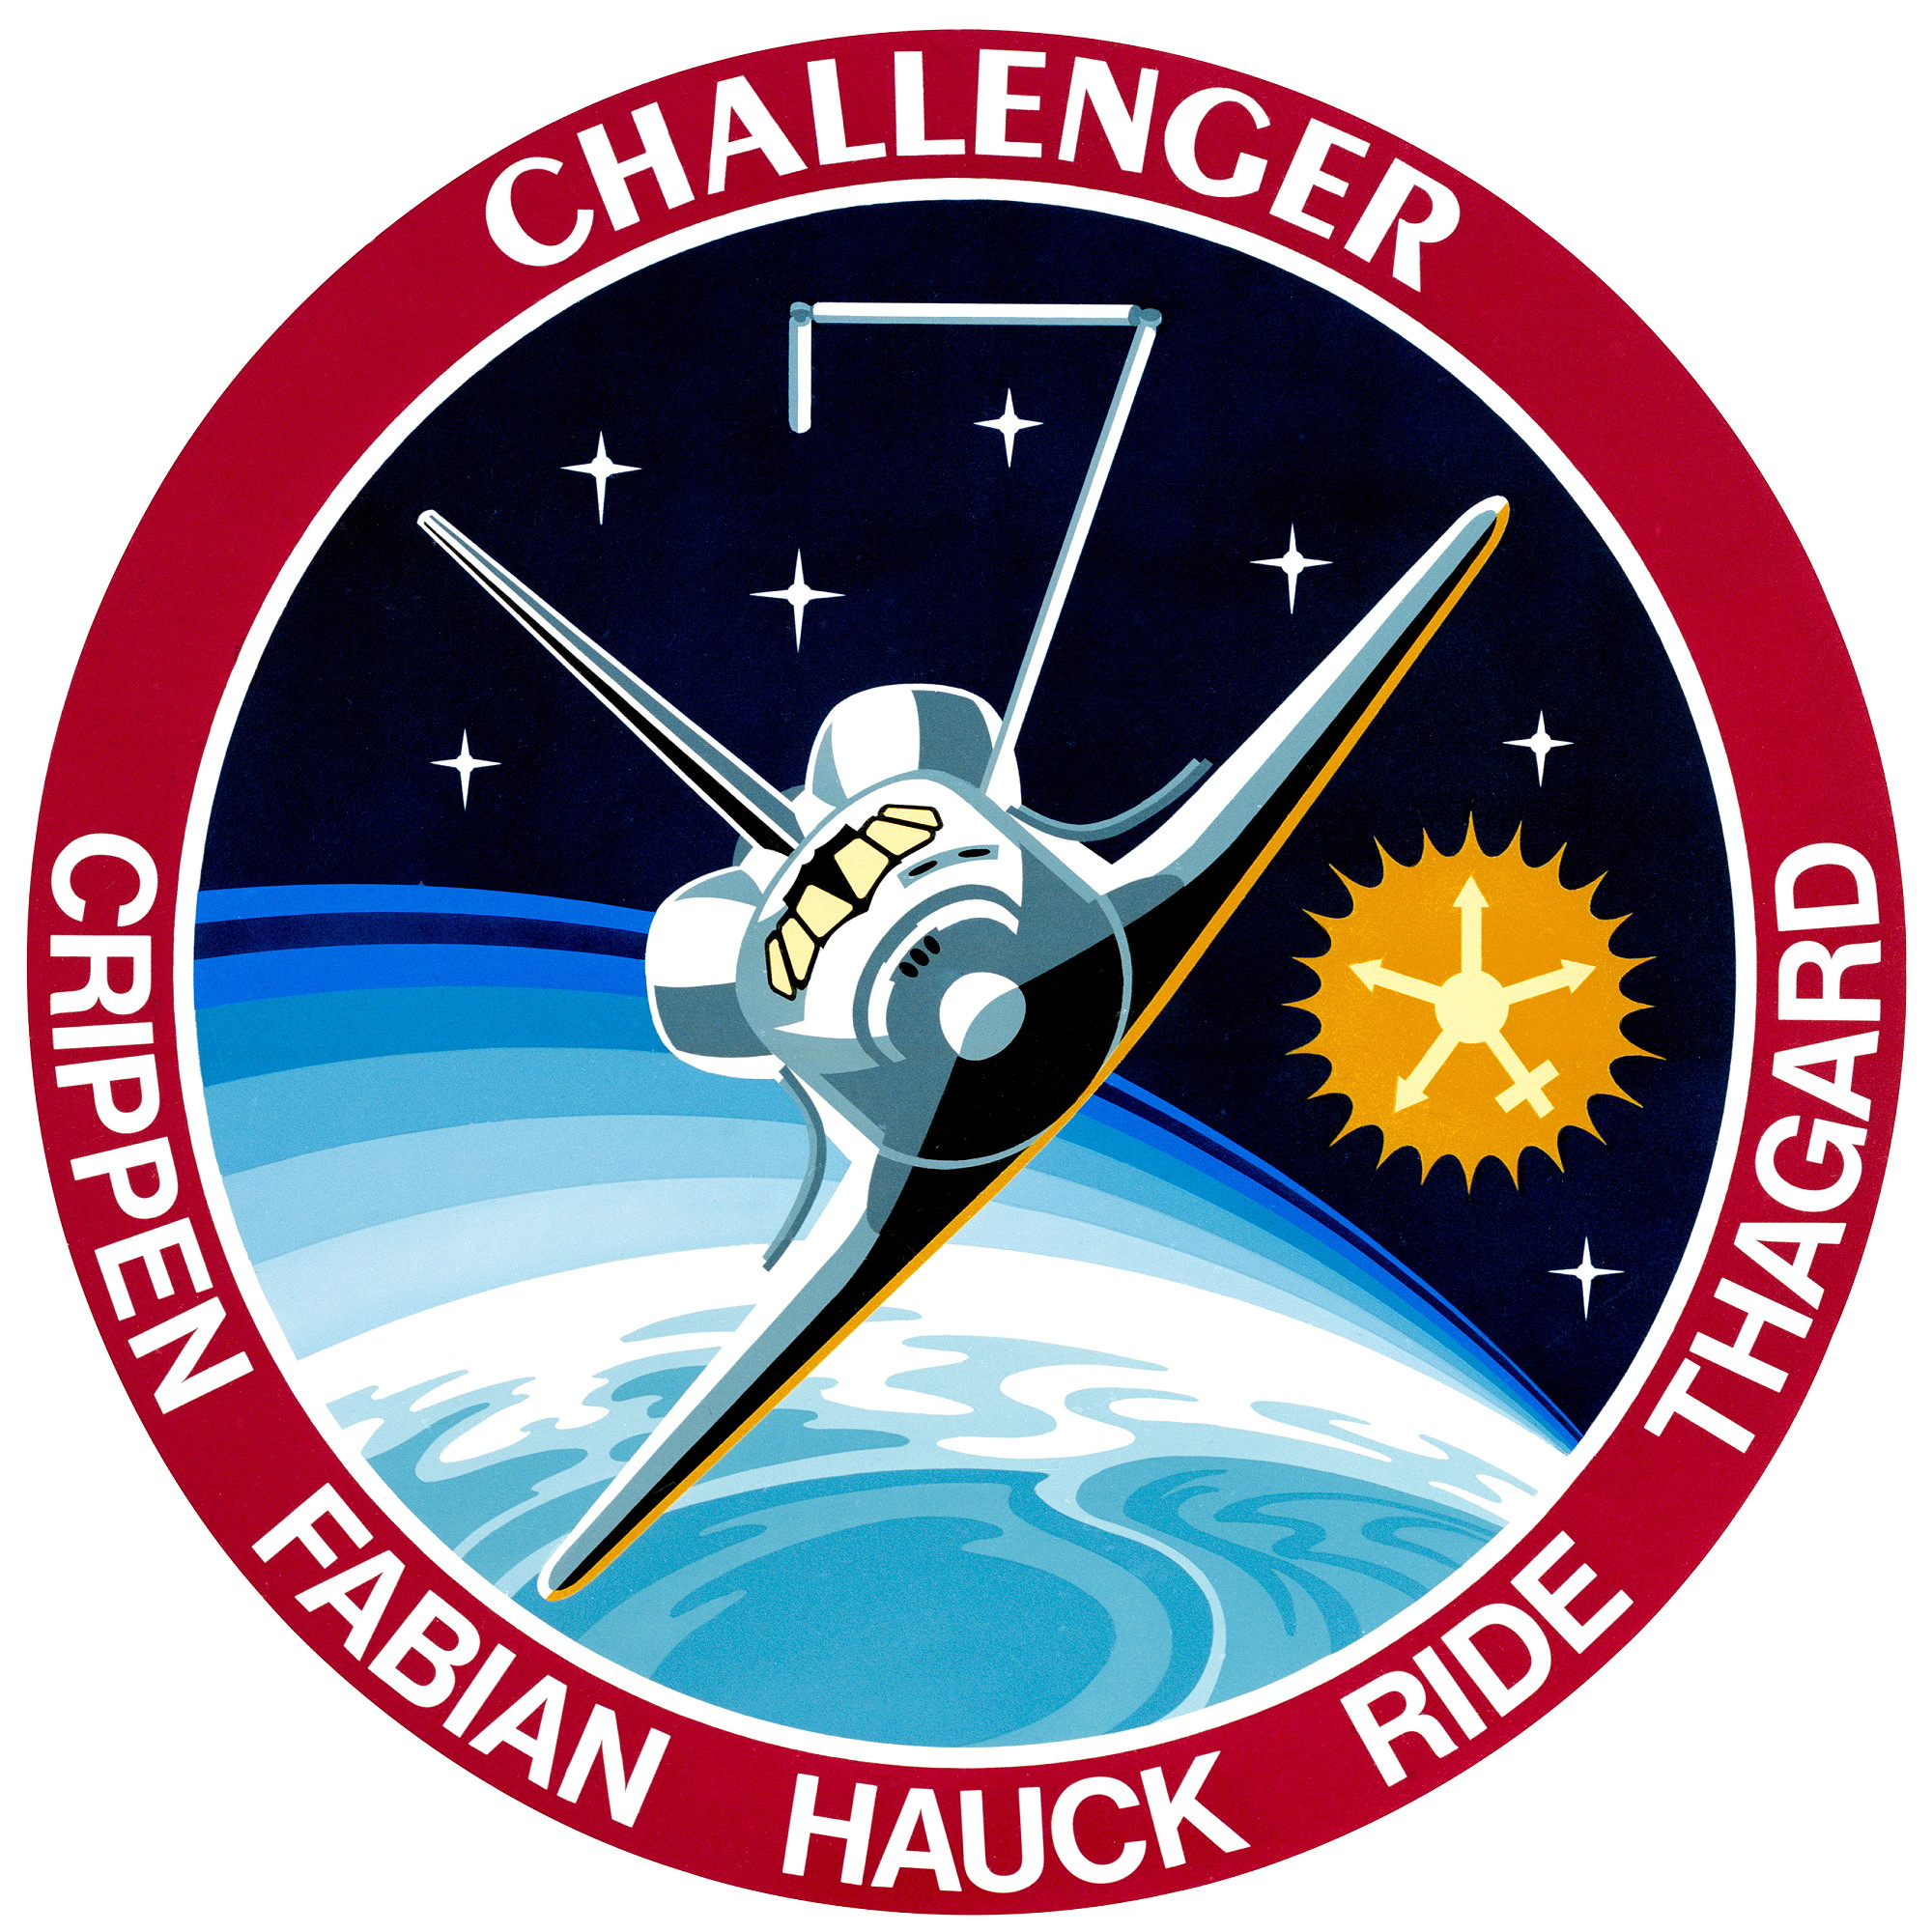 space shuttle mission logos - photo #39